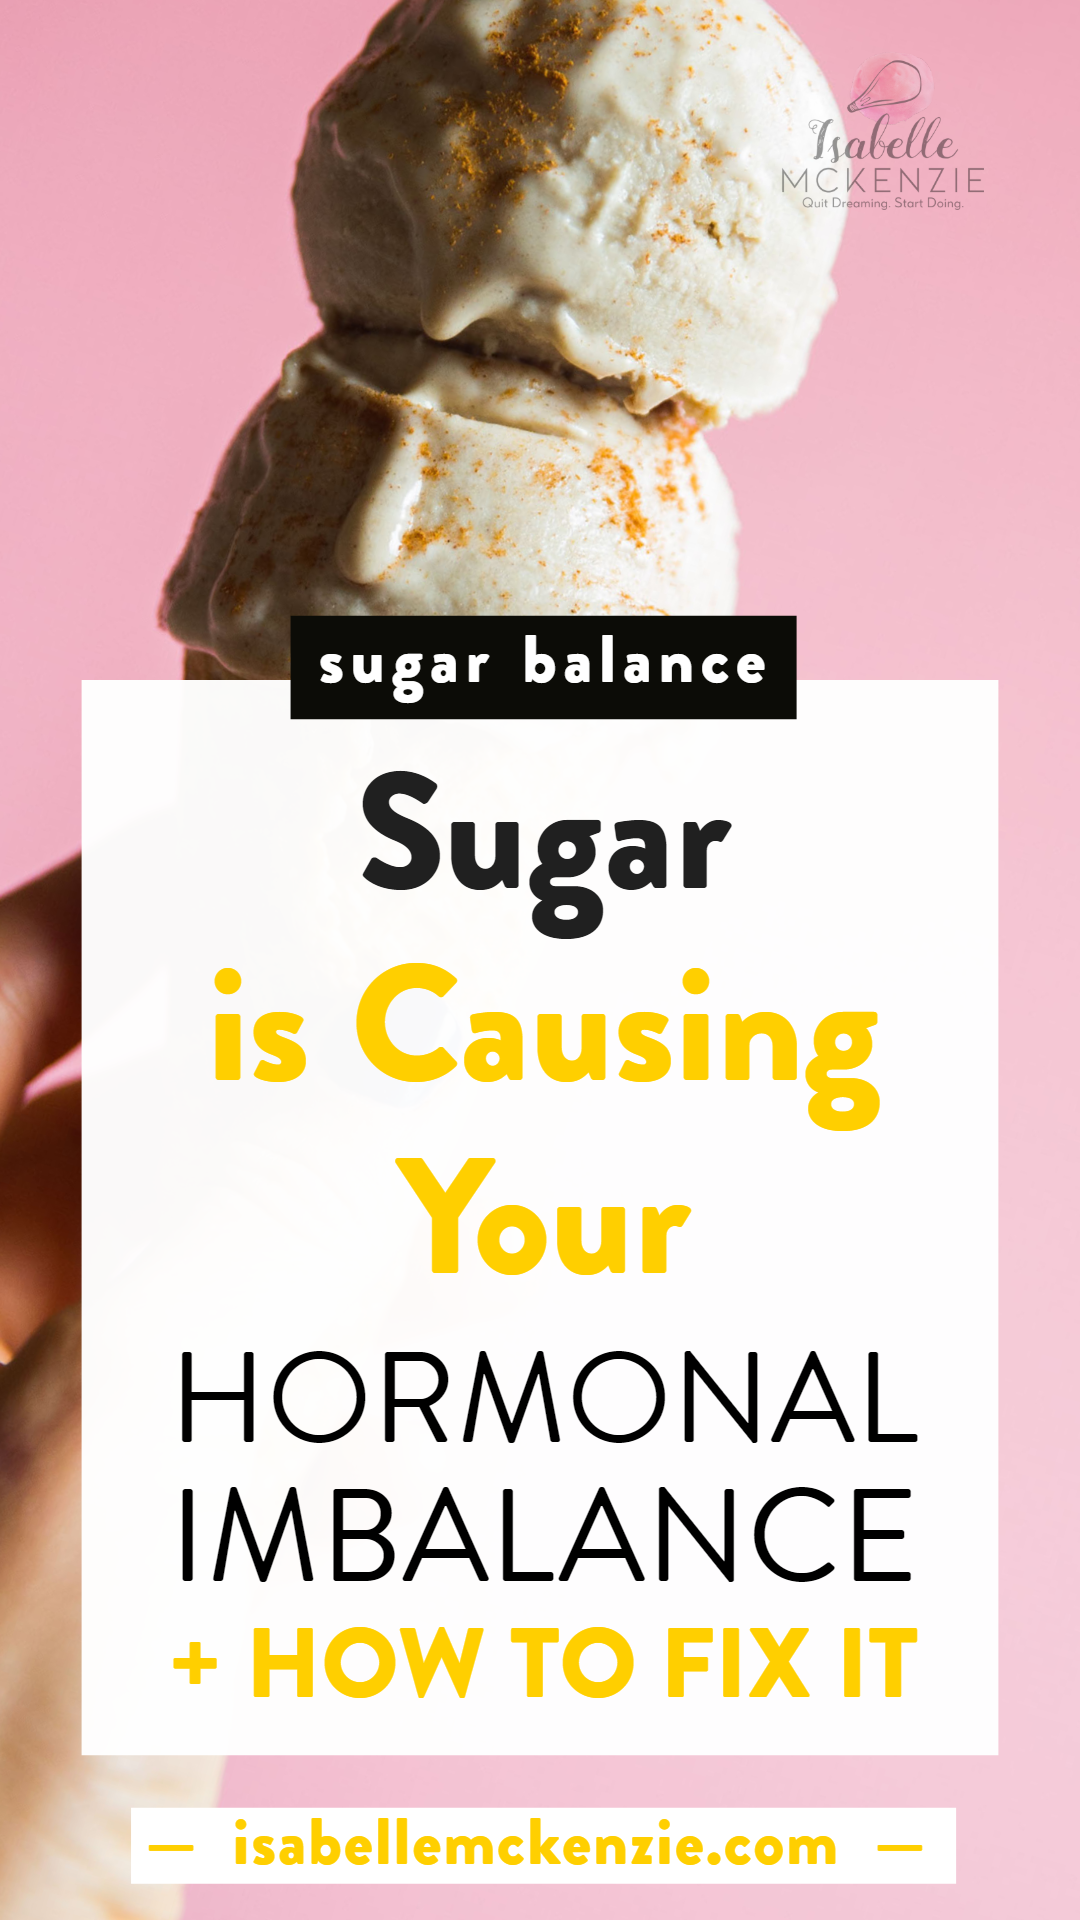 Sugar is Secretly Causing Your Hormonal Balances - How to Fix It - Isabelle McKenzie